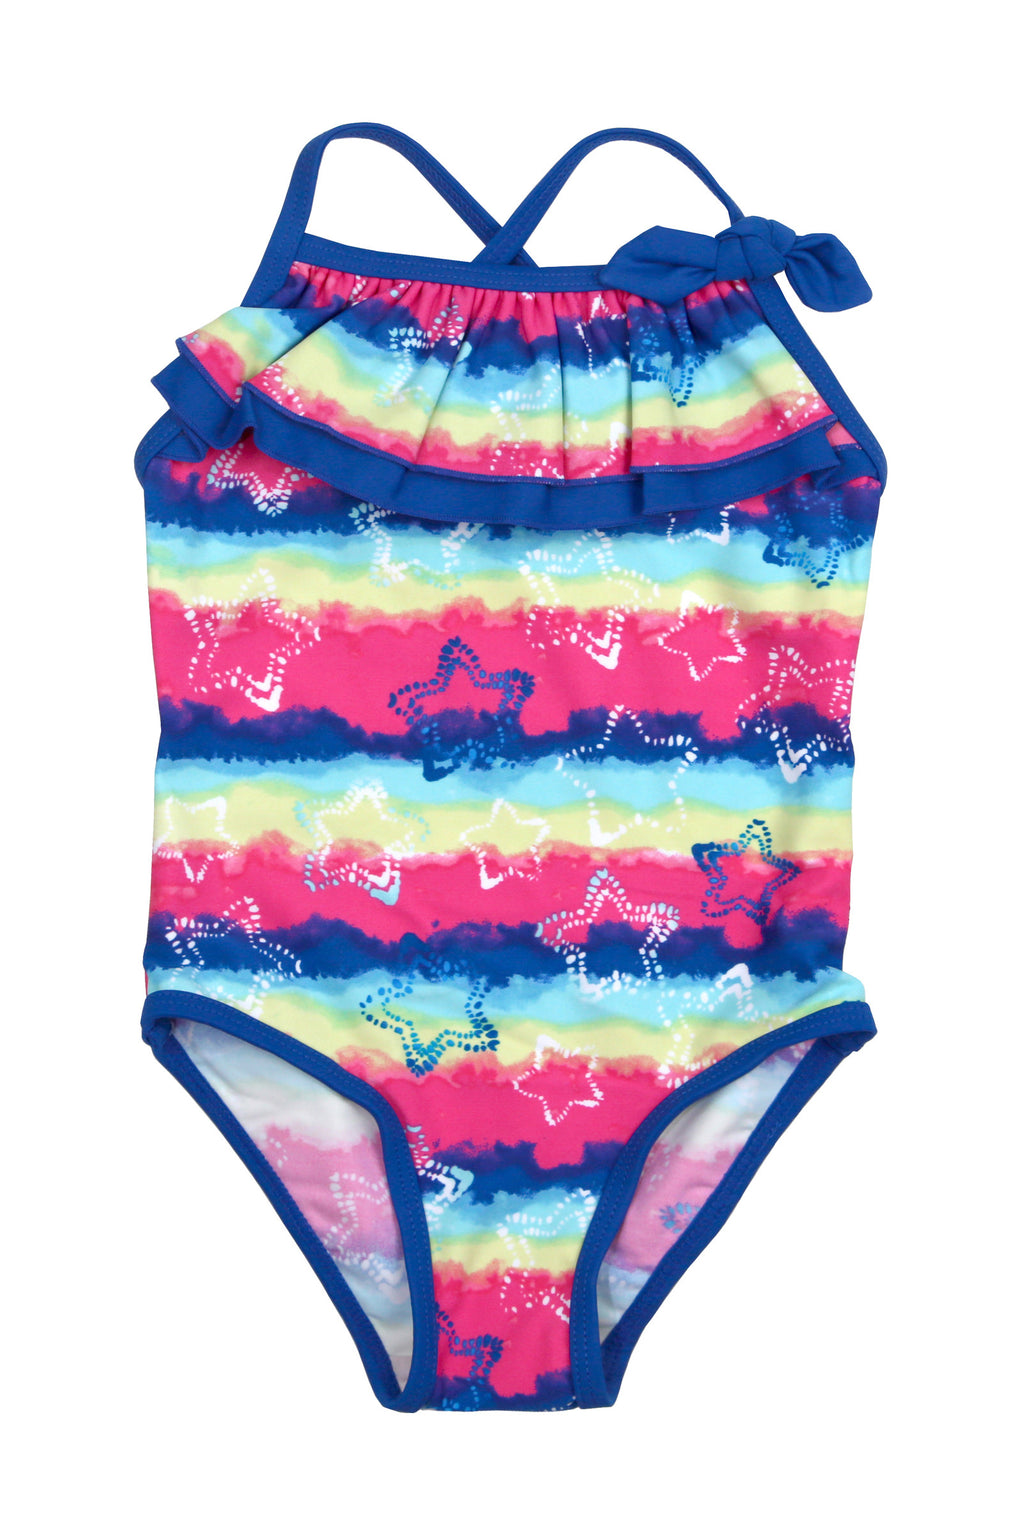 Stars on Tie-dye Front Ruffle One-piece, navy